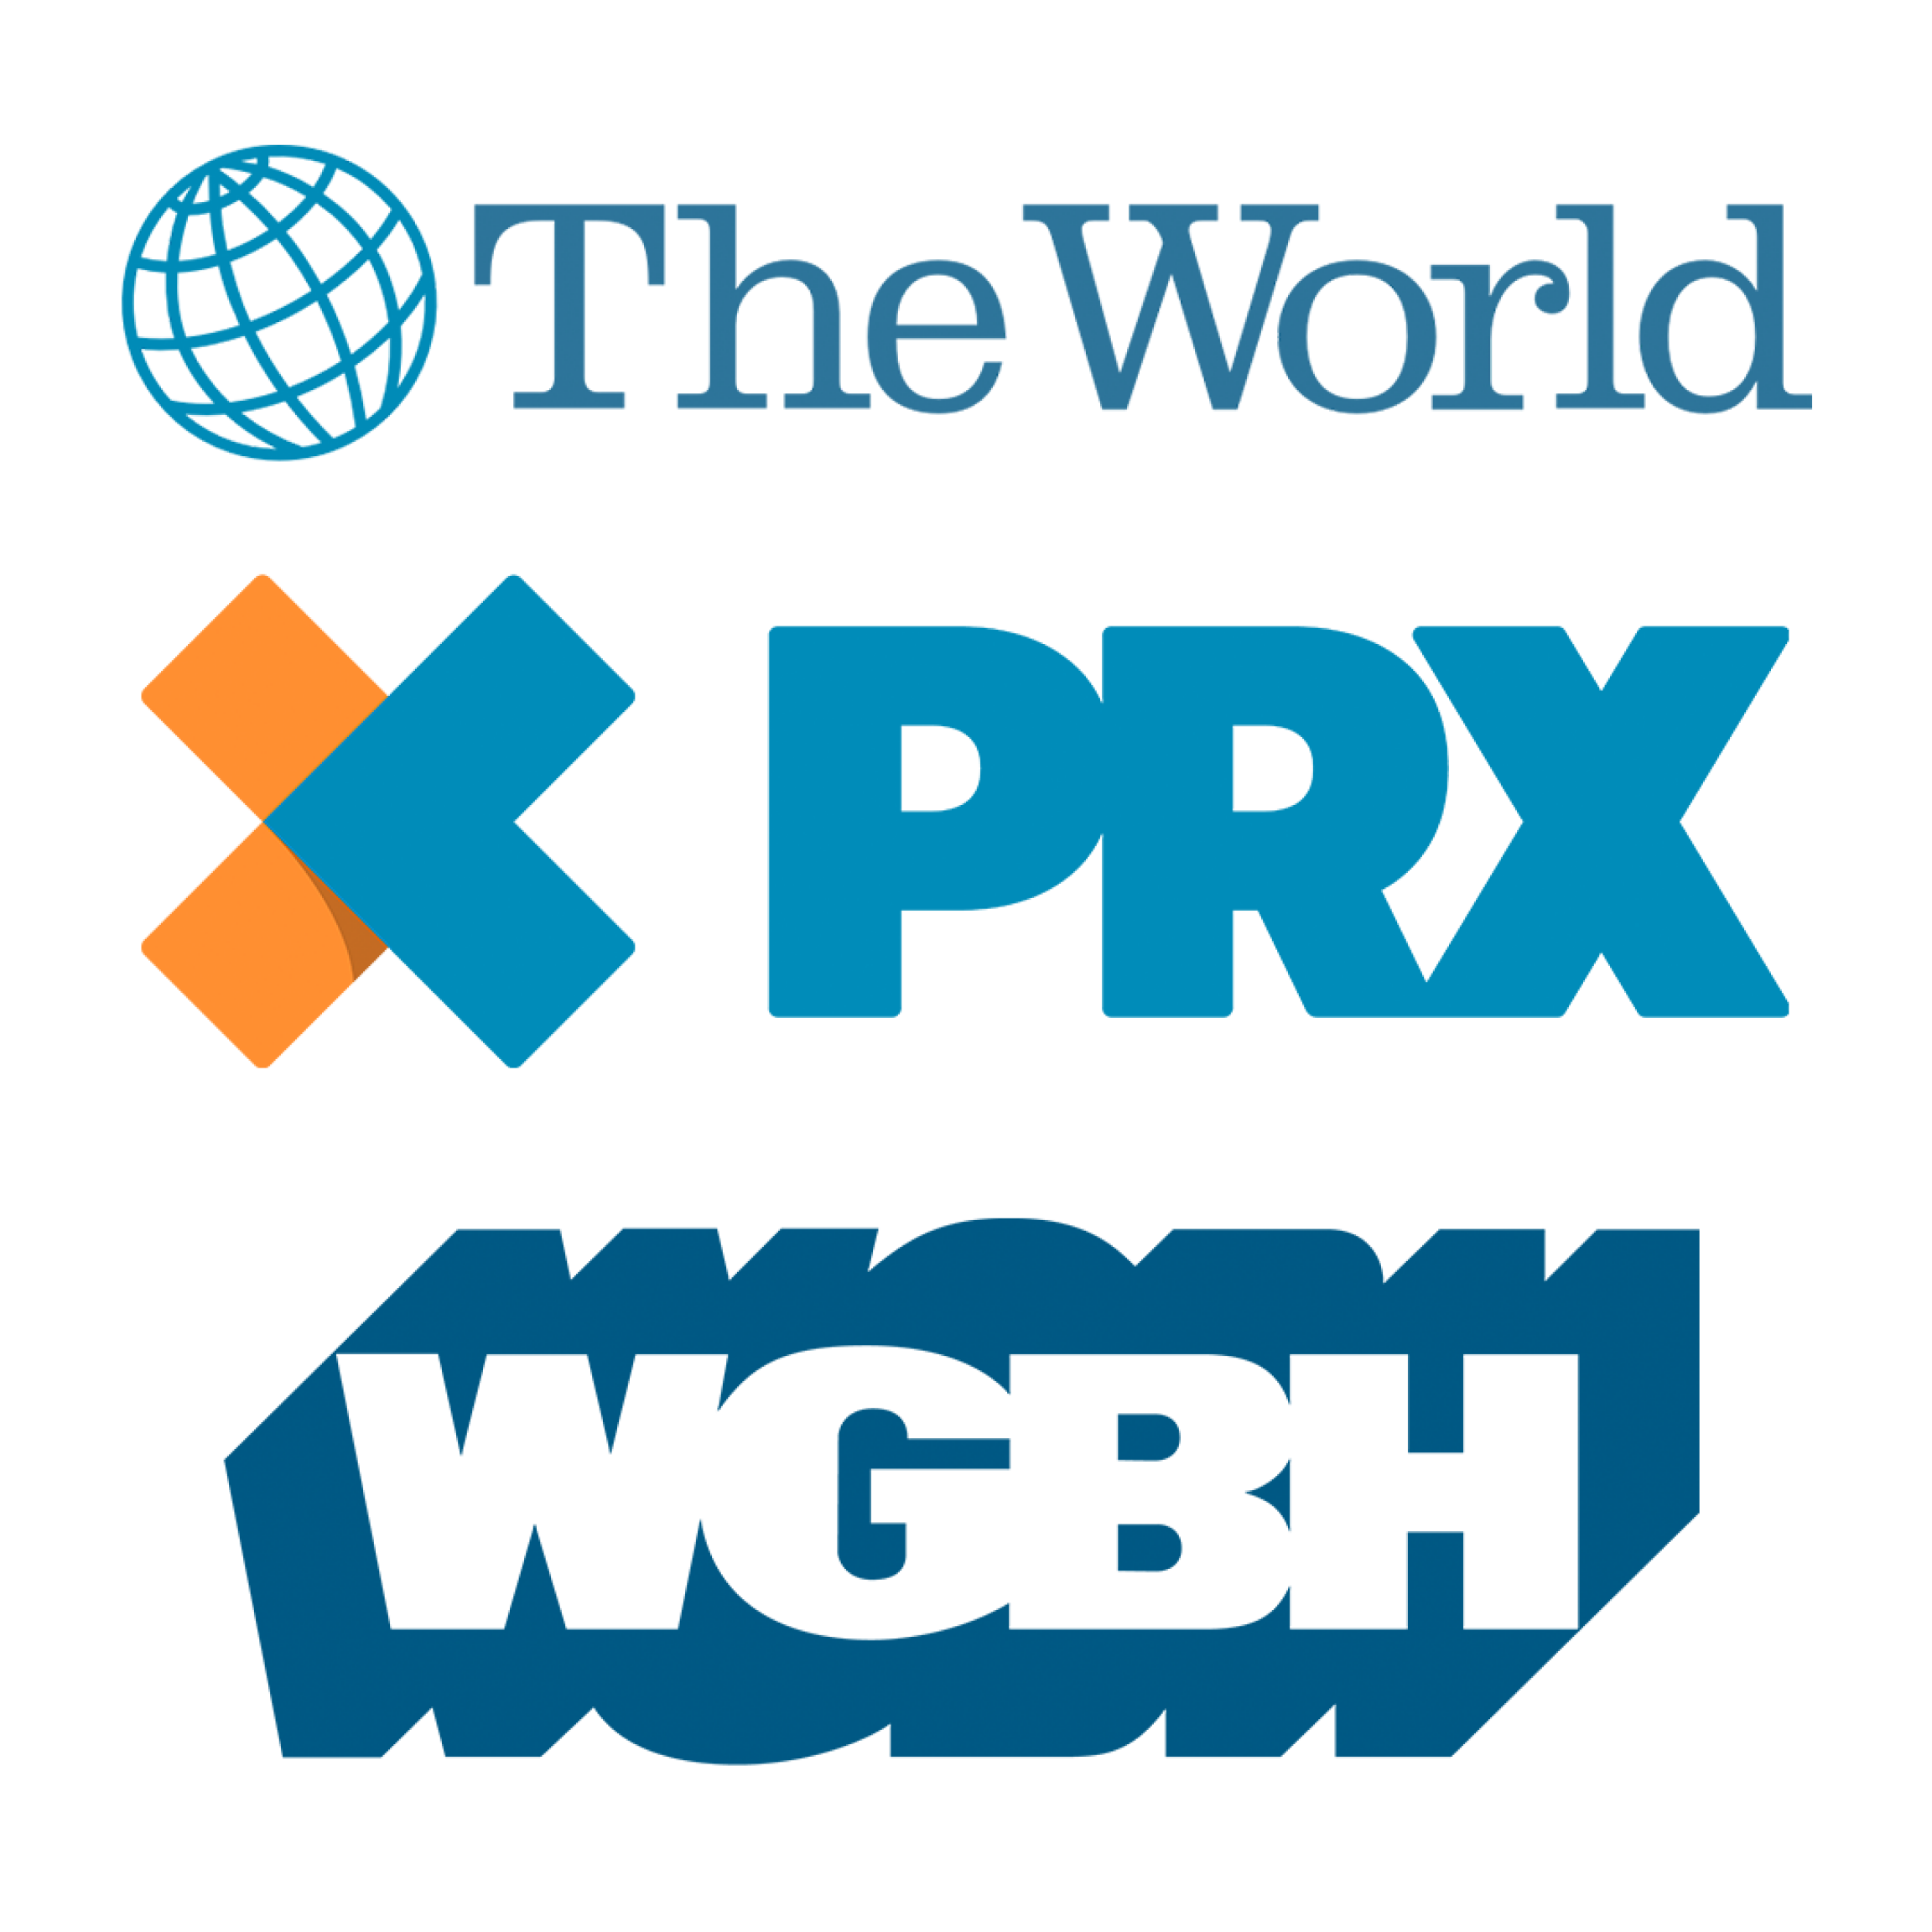 The World, PRX, WGBH logos